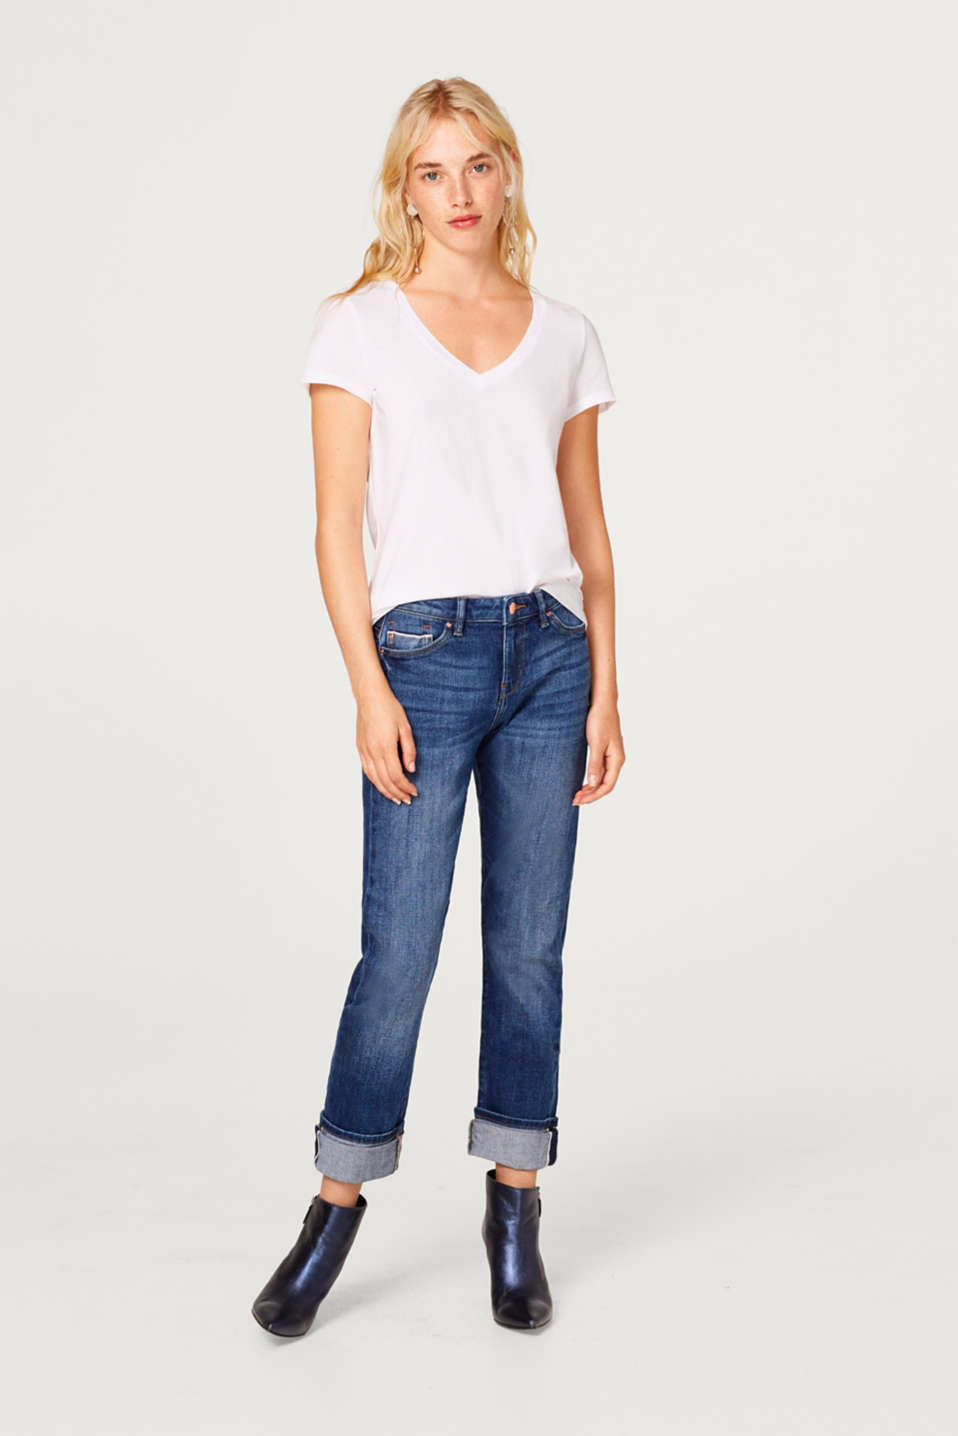 In a pack of two: basic T-shirt with a V neckline